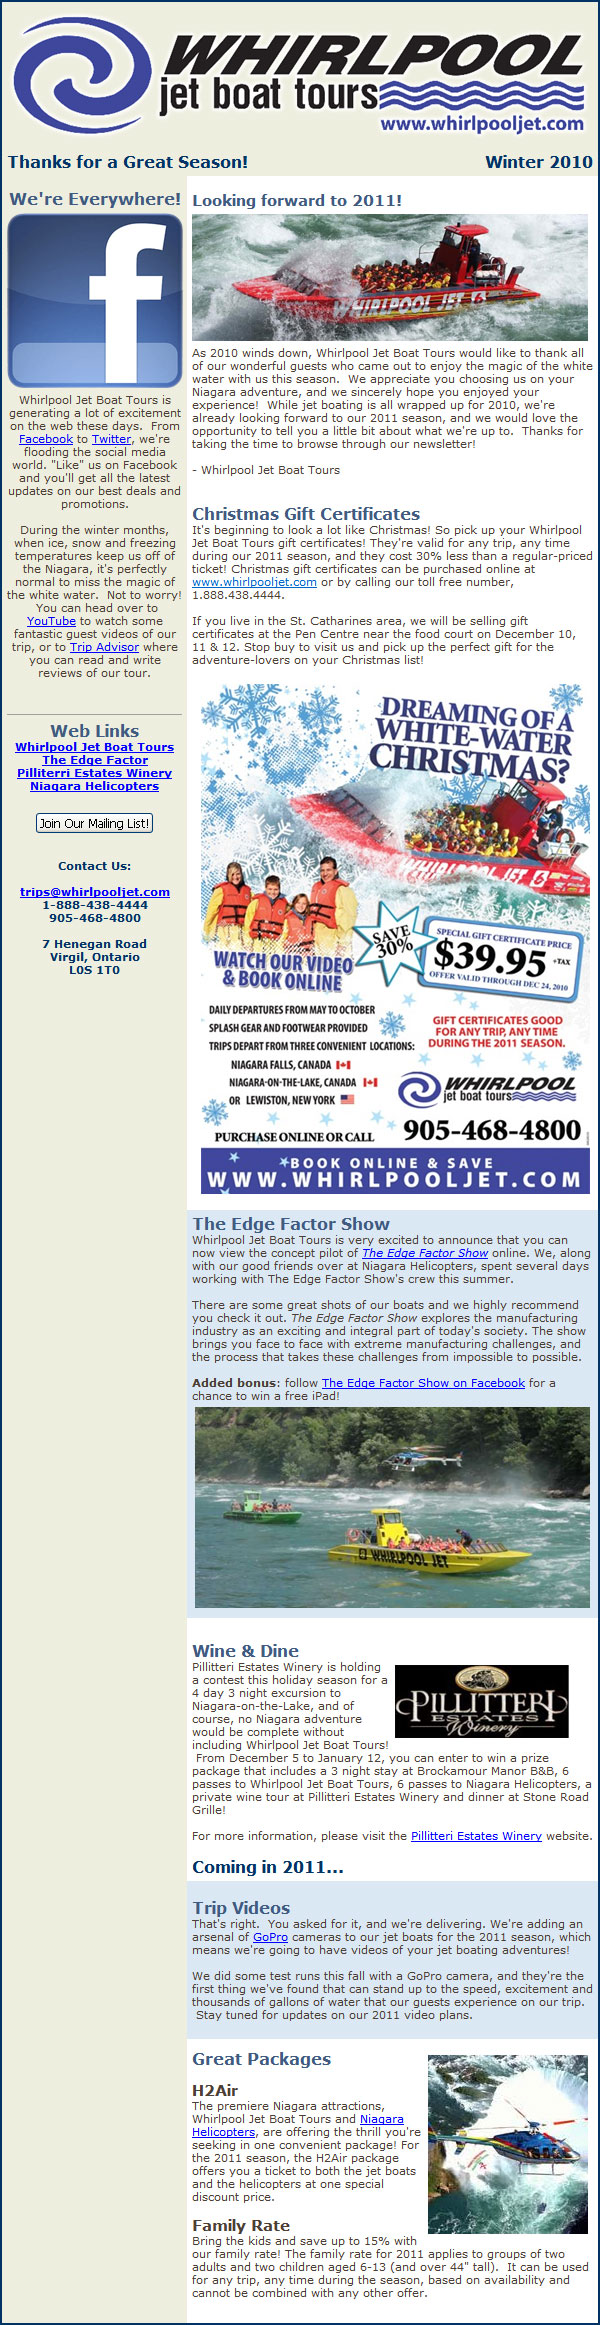 Discount coupons for whirlpool jet boat tours